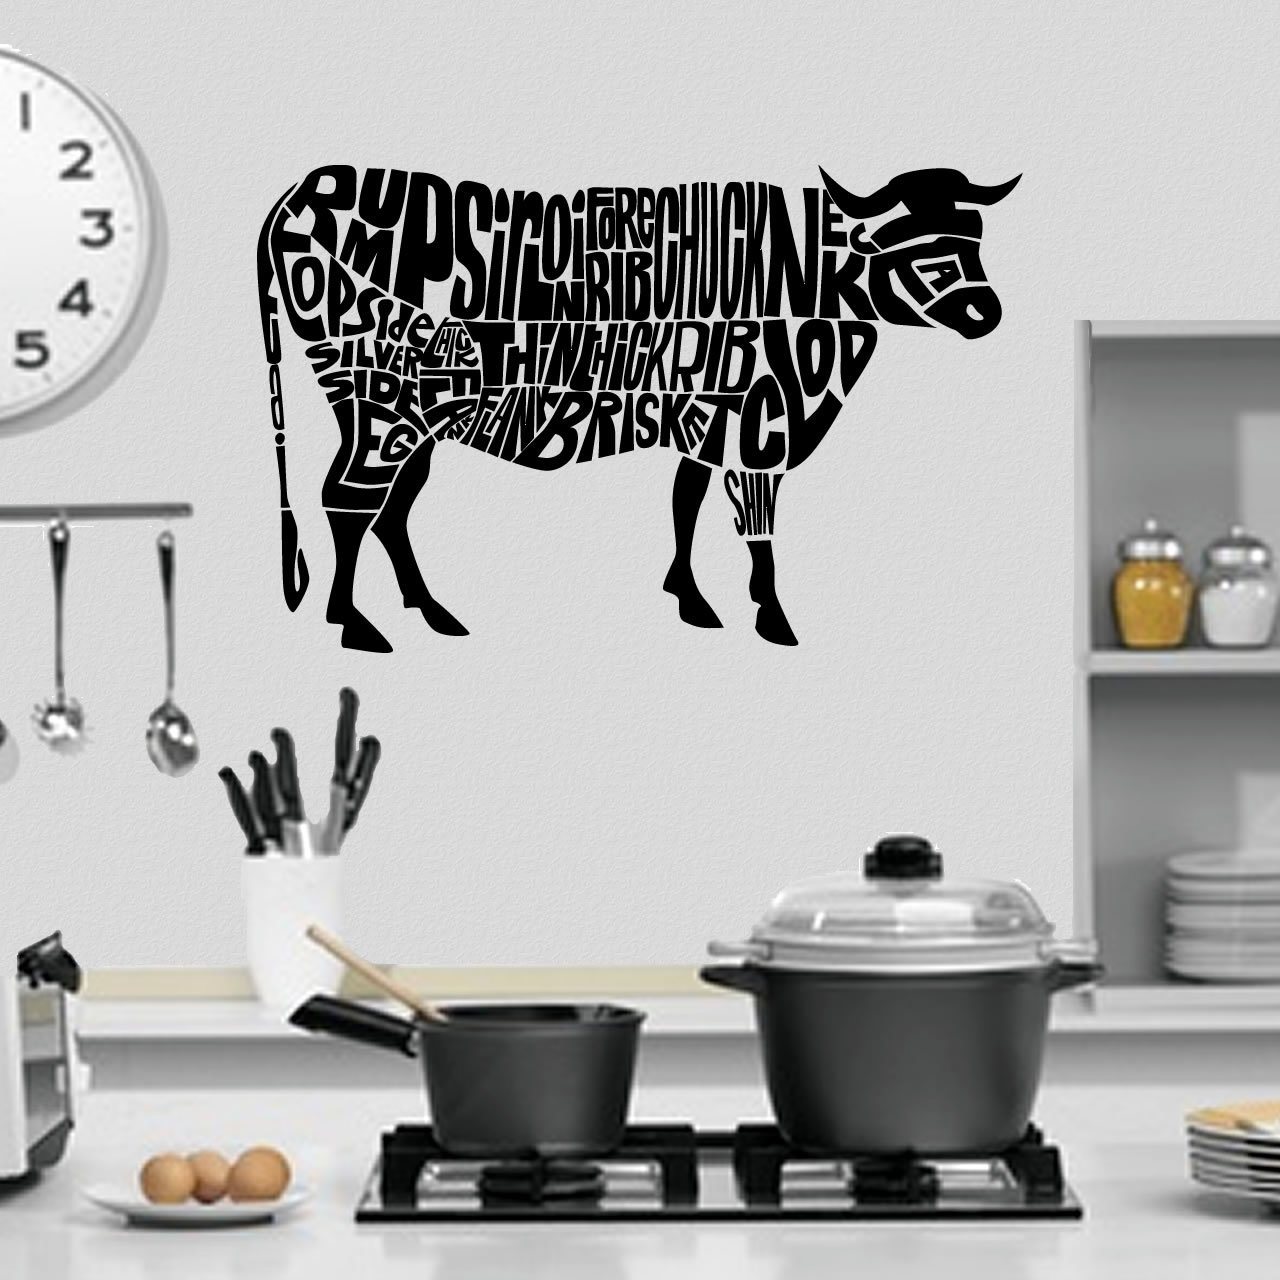 Cow Anatomy - Cuts Of Beef Kitchen Wall Sticker - World of Wall Stickers